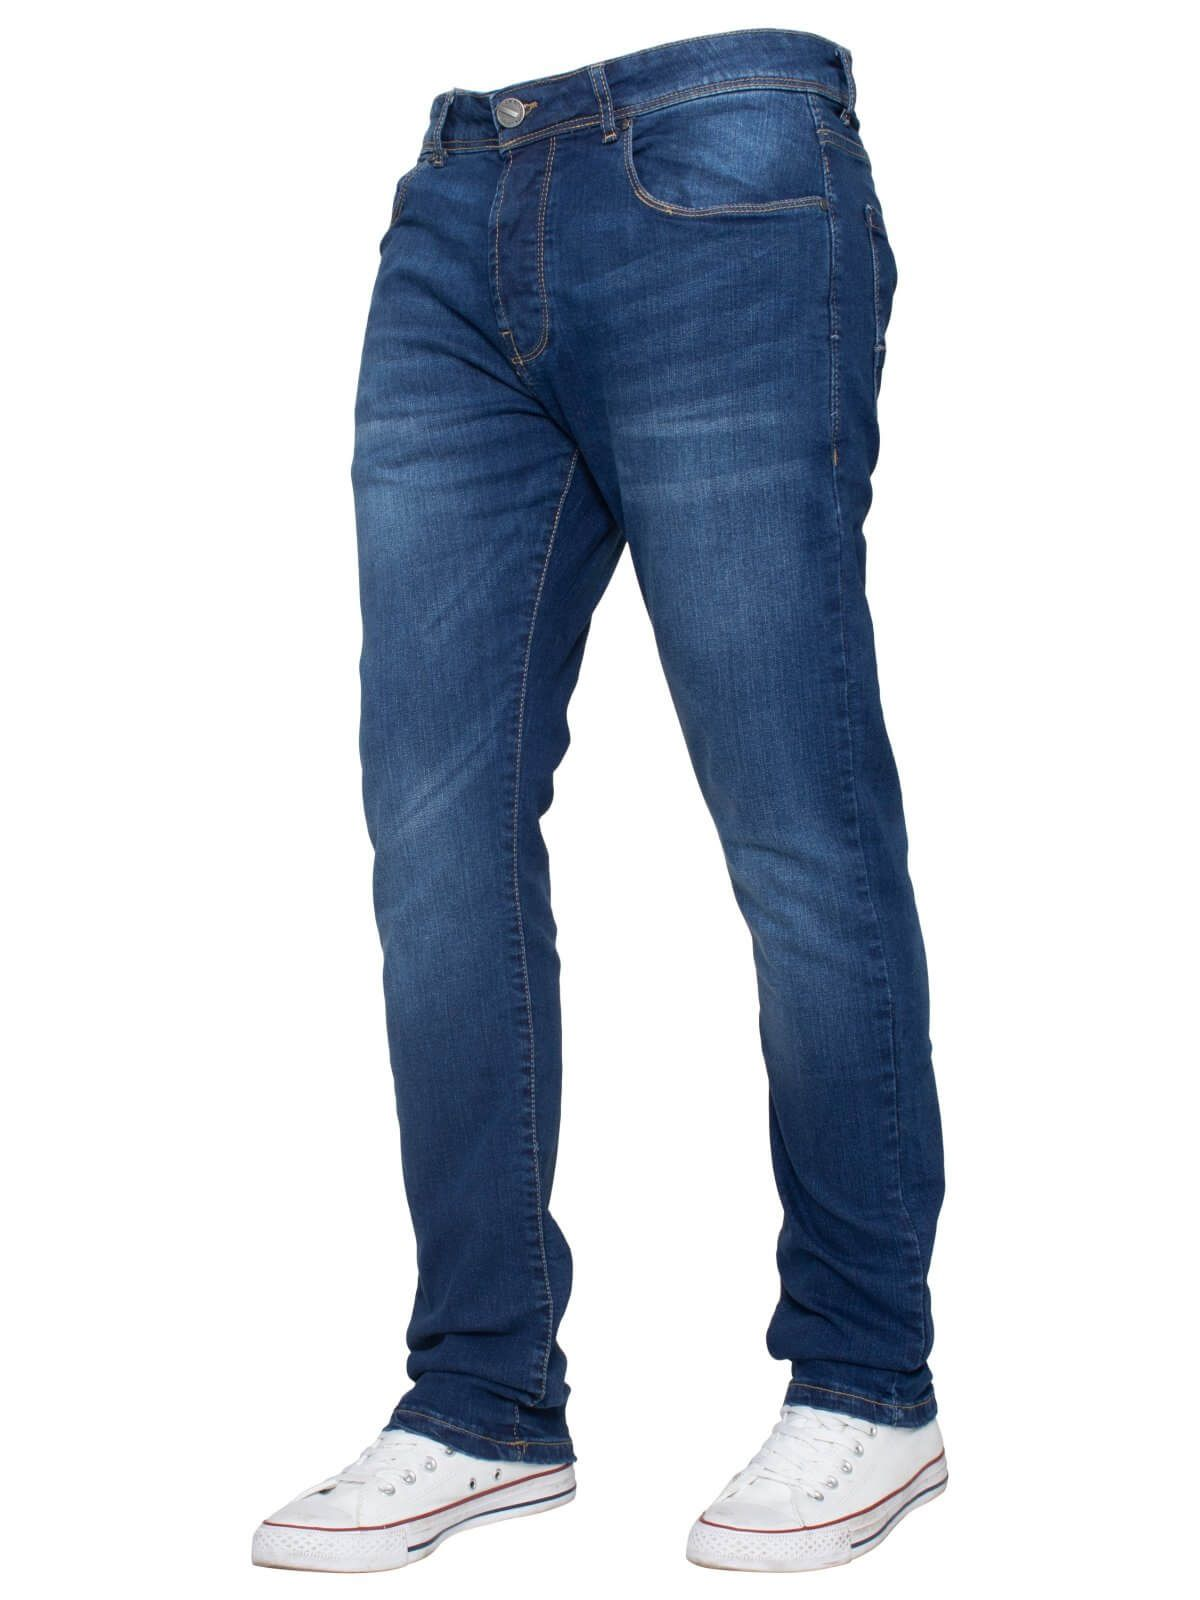 Mens Slim Stretch  Denim Jeans | Enzo Designer Menswear